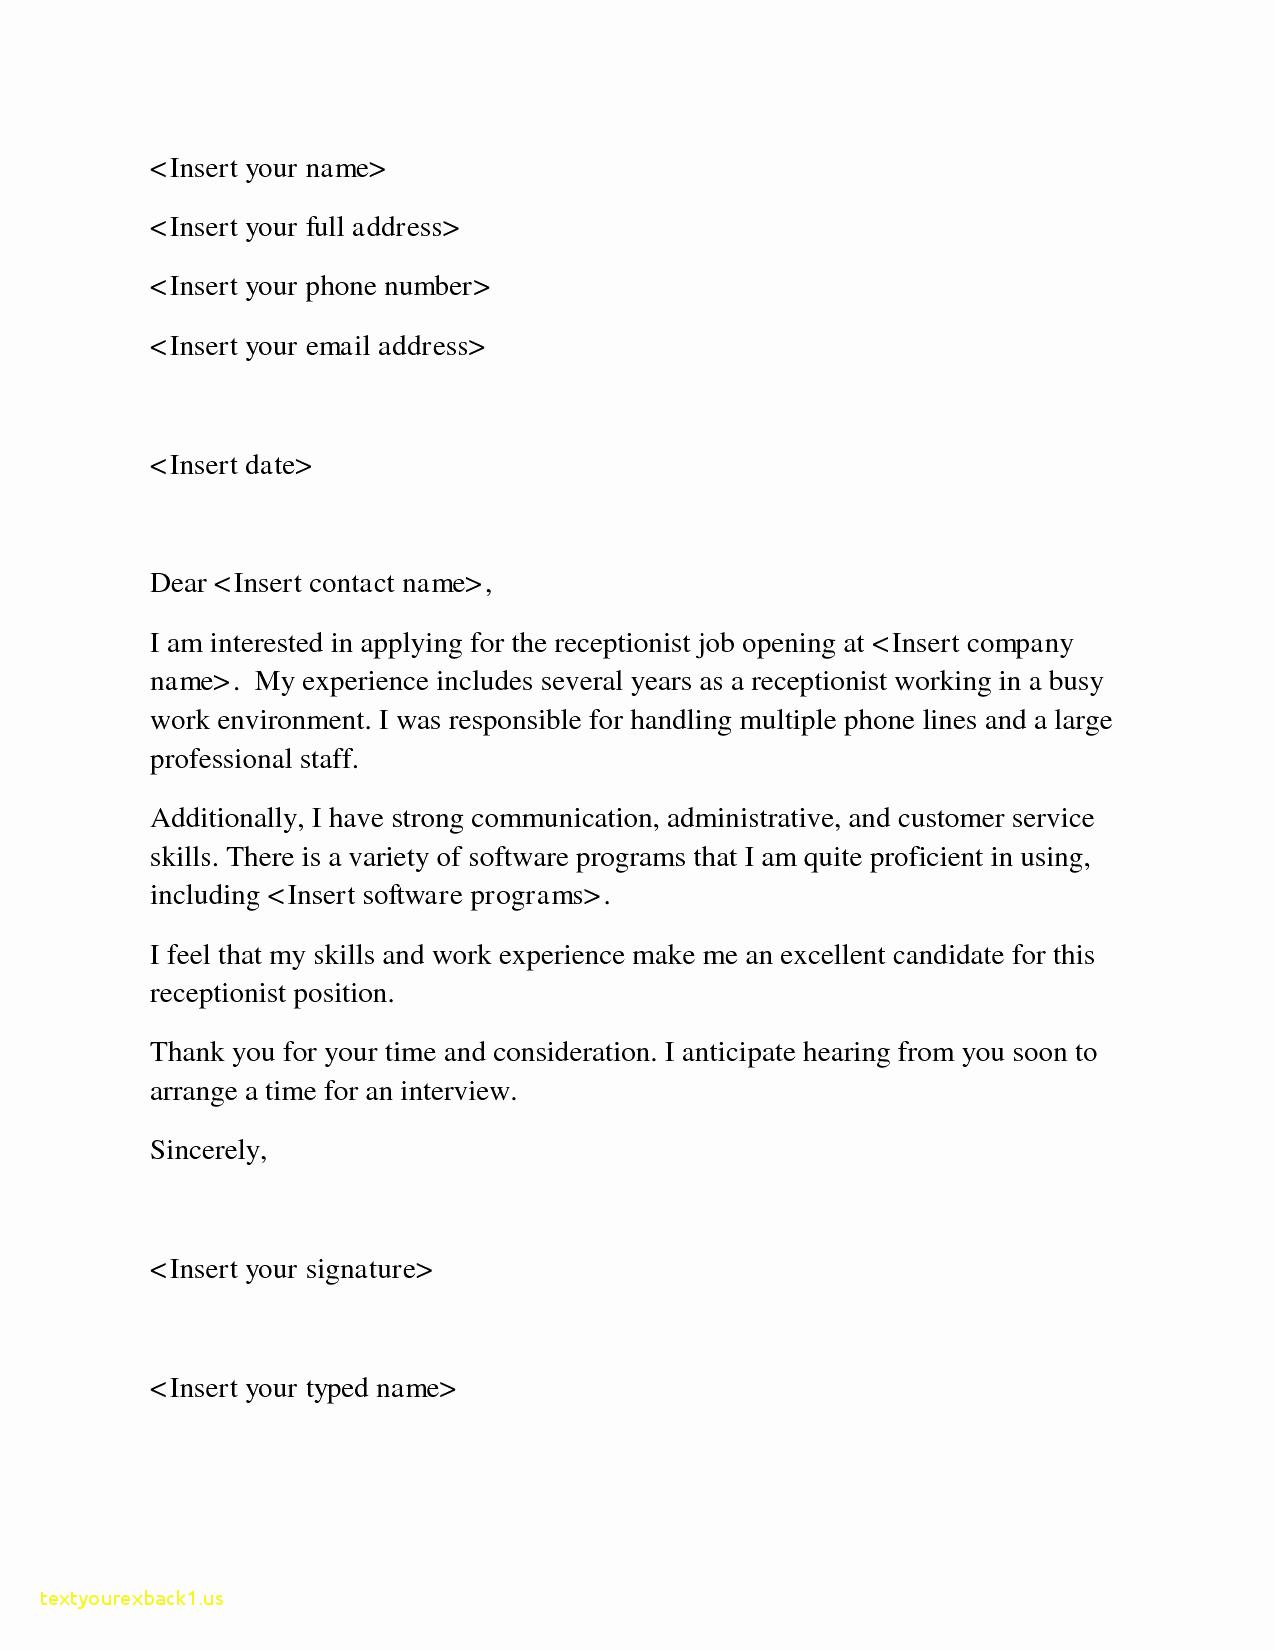 Stand Out Cover Letter Template - Cover Letter Beautiful top Result Addressing Hiring Manager In Cover